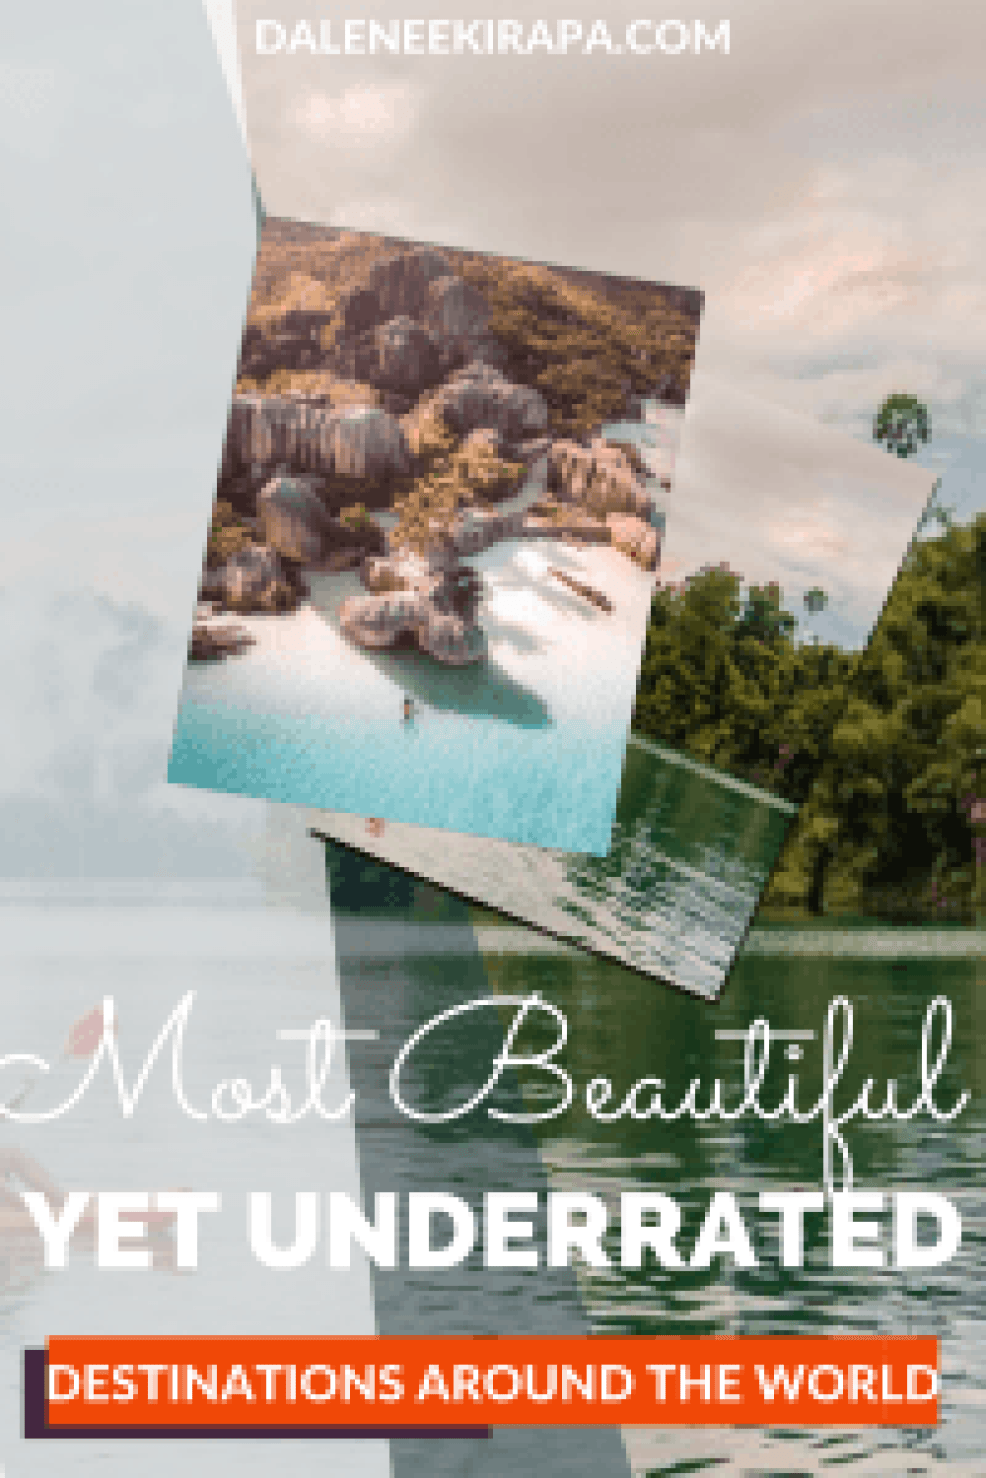 10 Most Underrated Travel Destinations That Are Simply Breathtaking